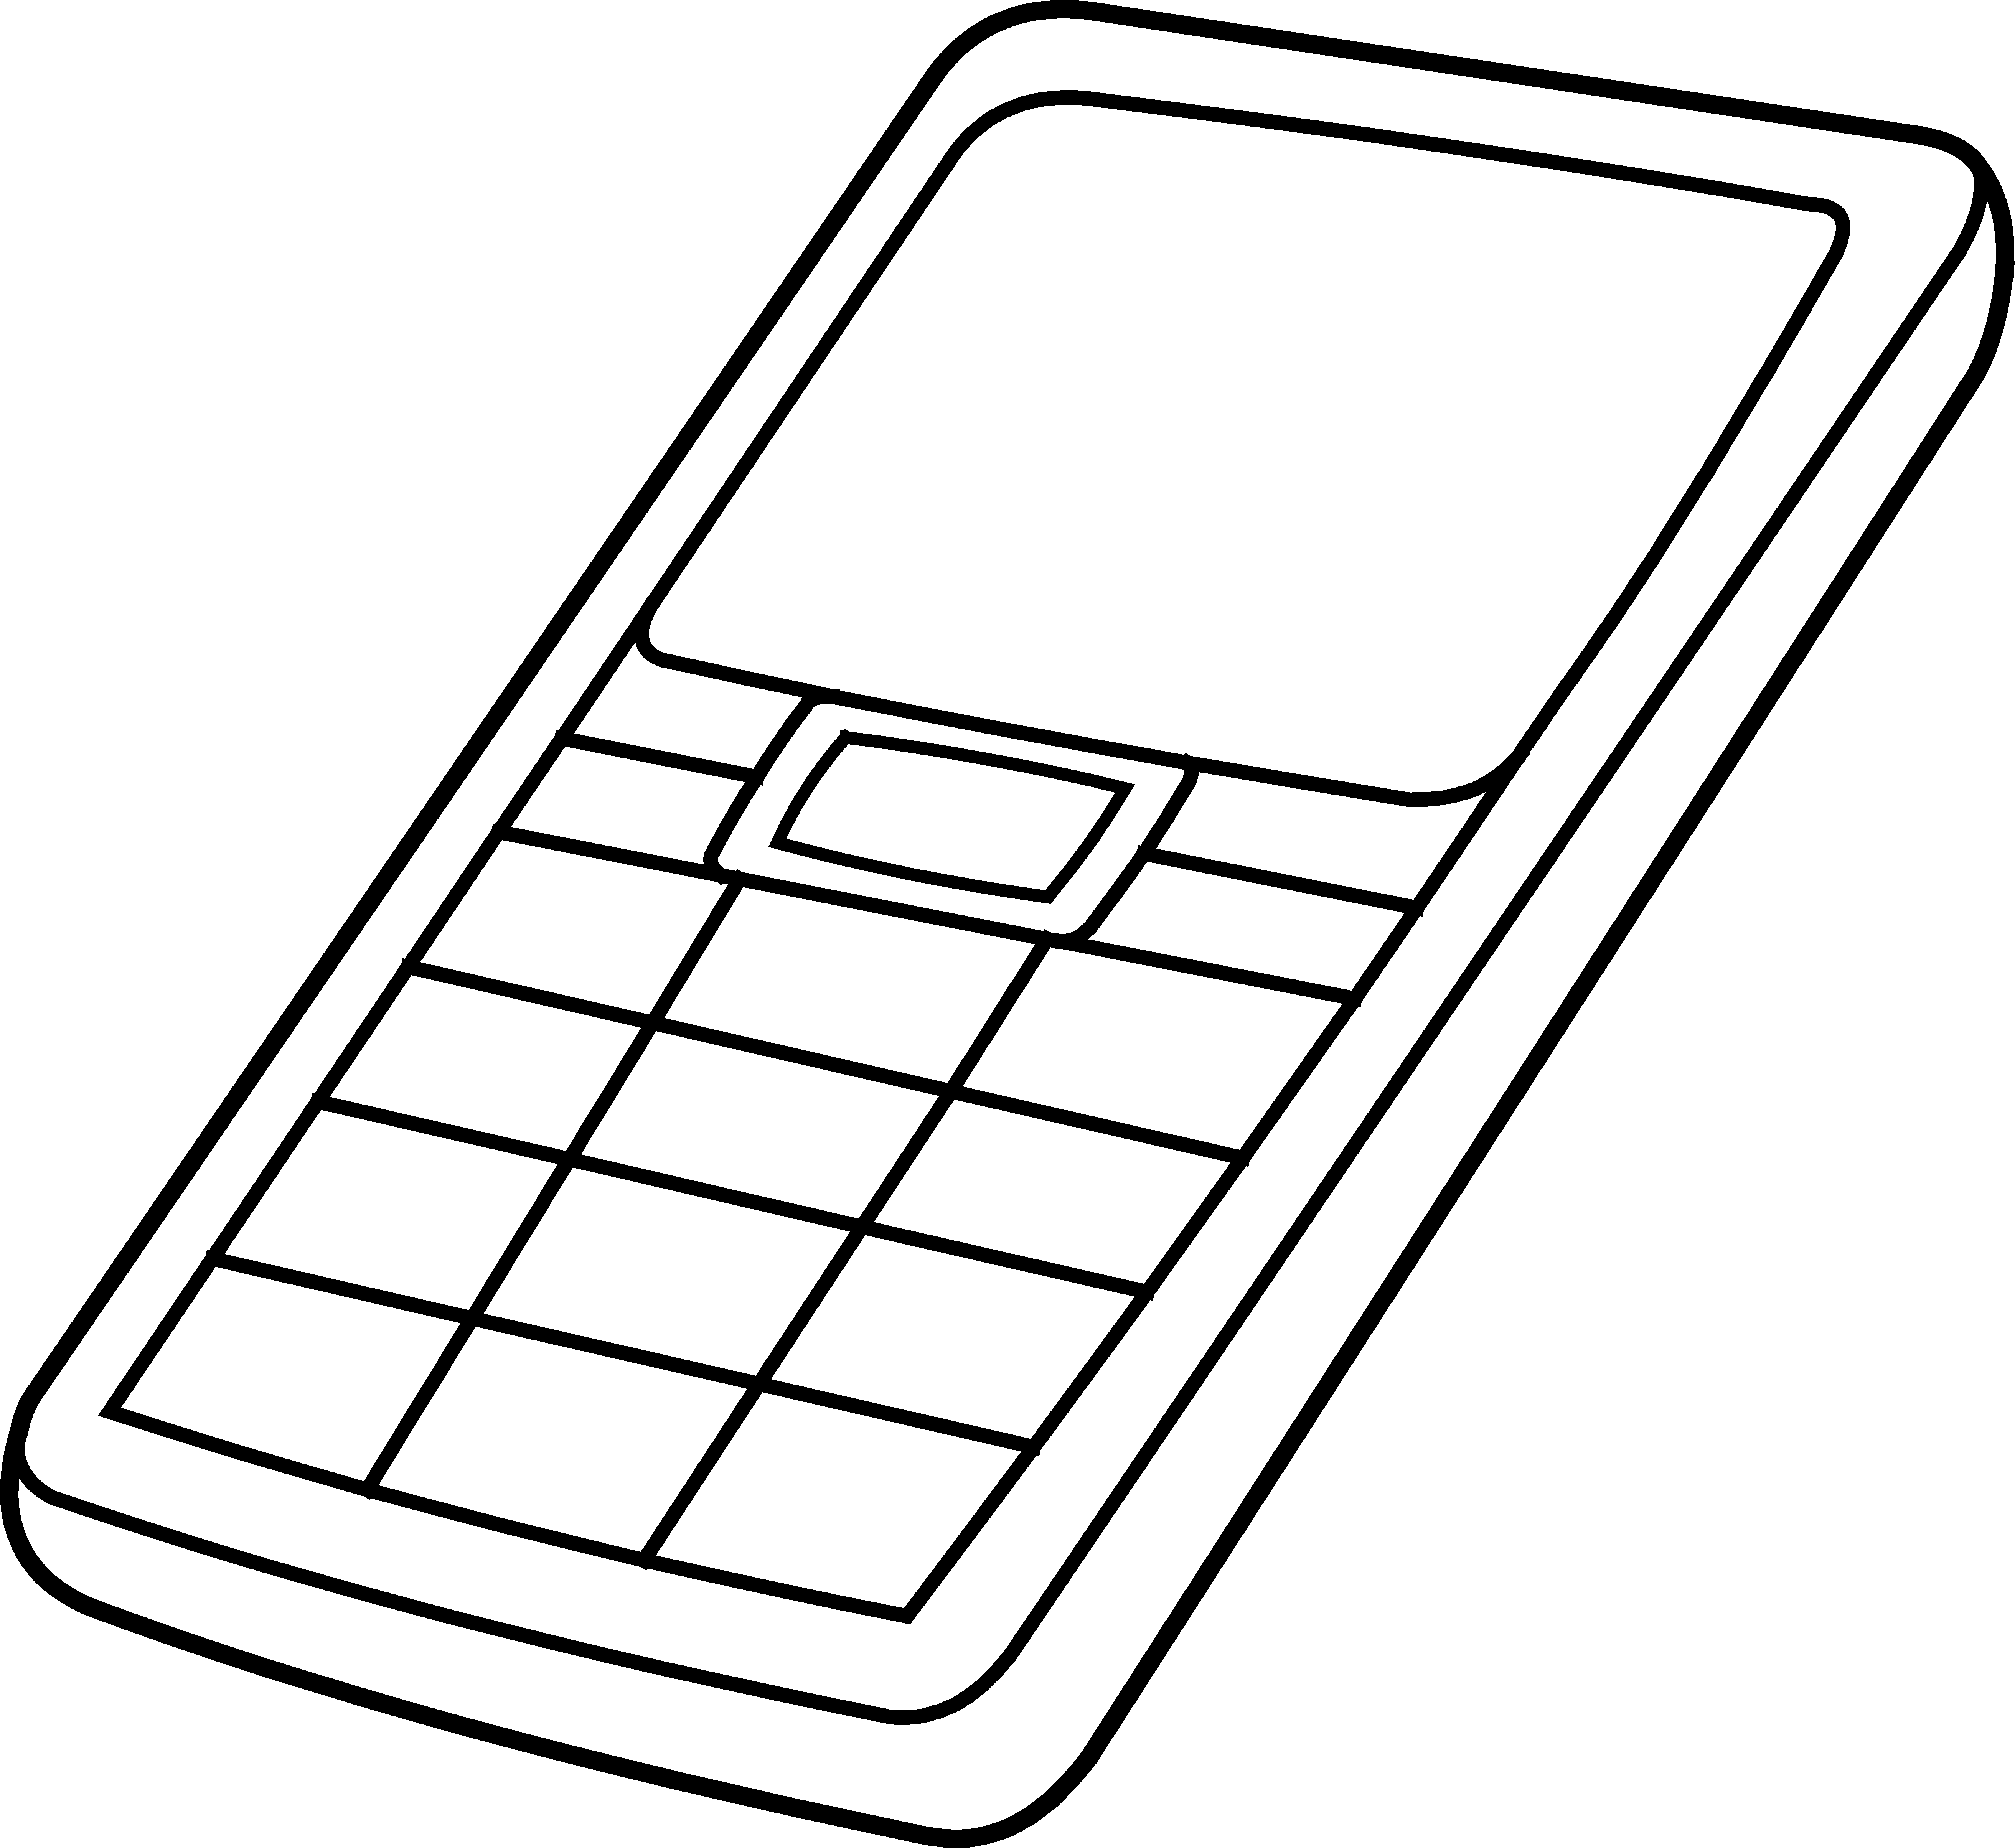 5252x4817 Cell Phone Colorable Outline